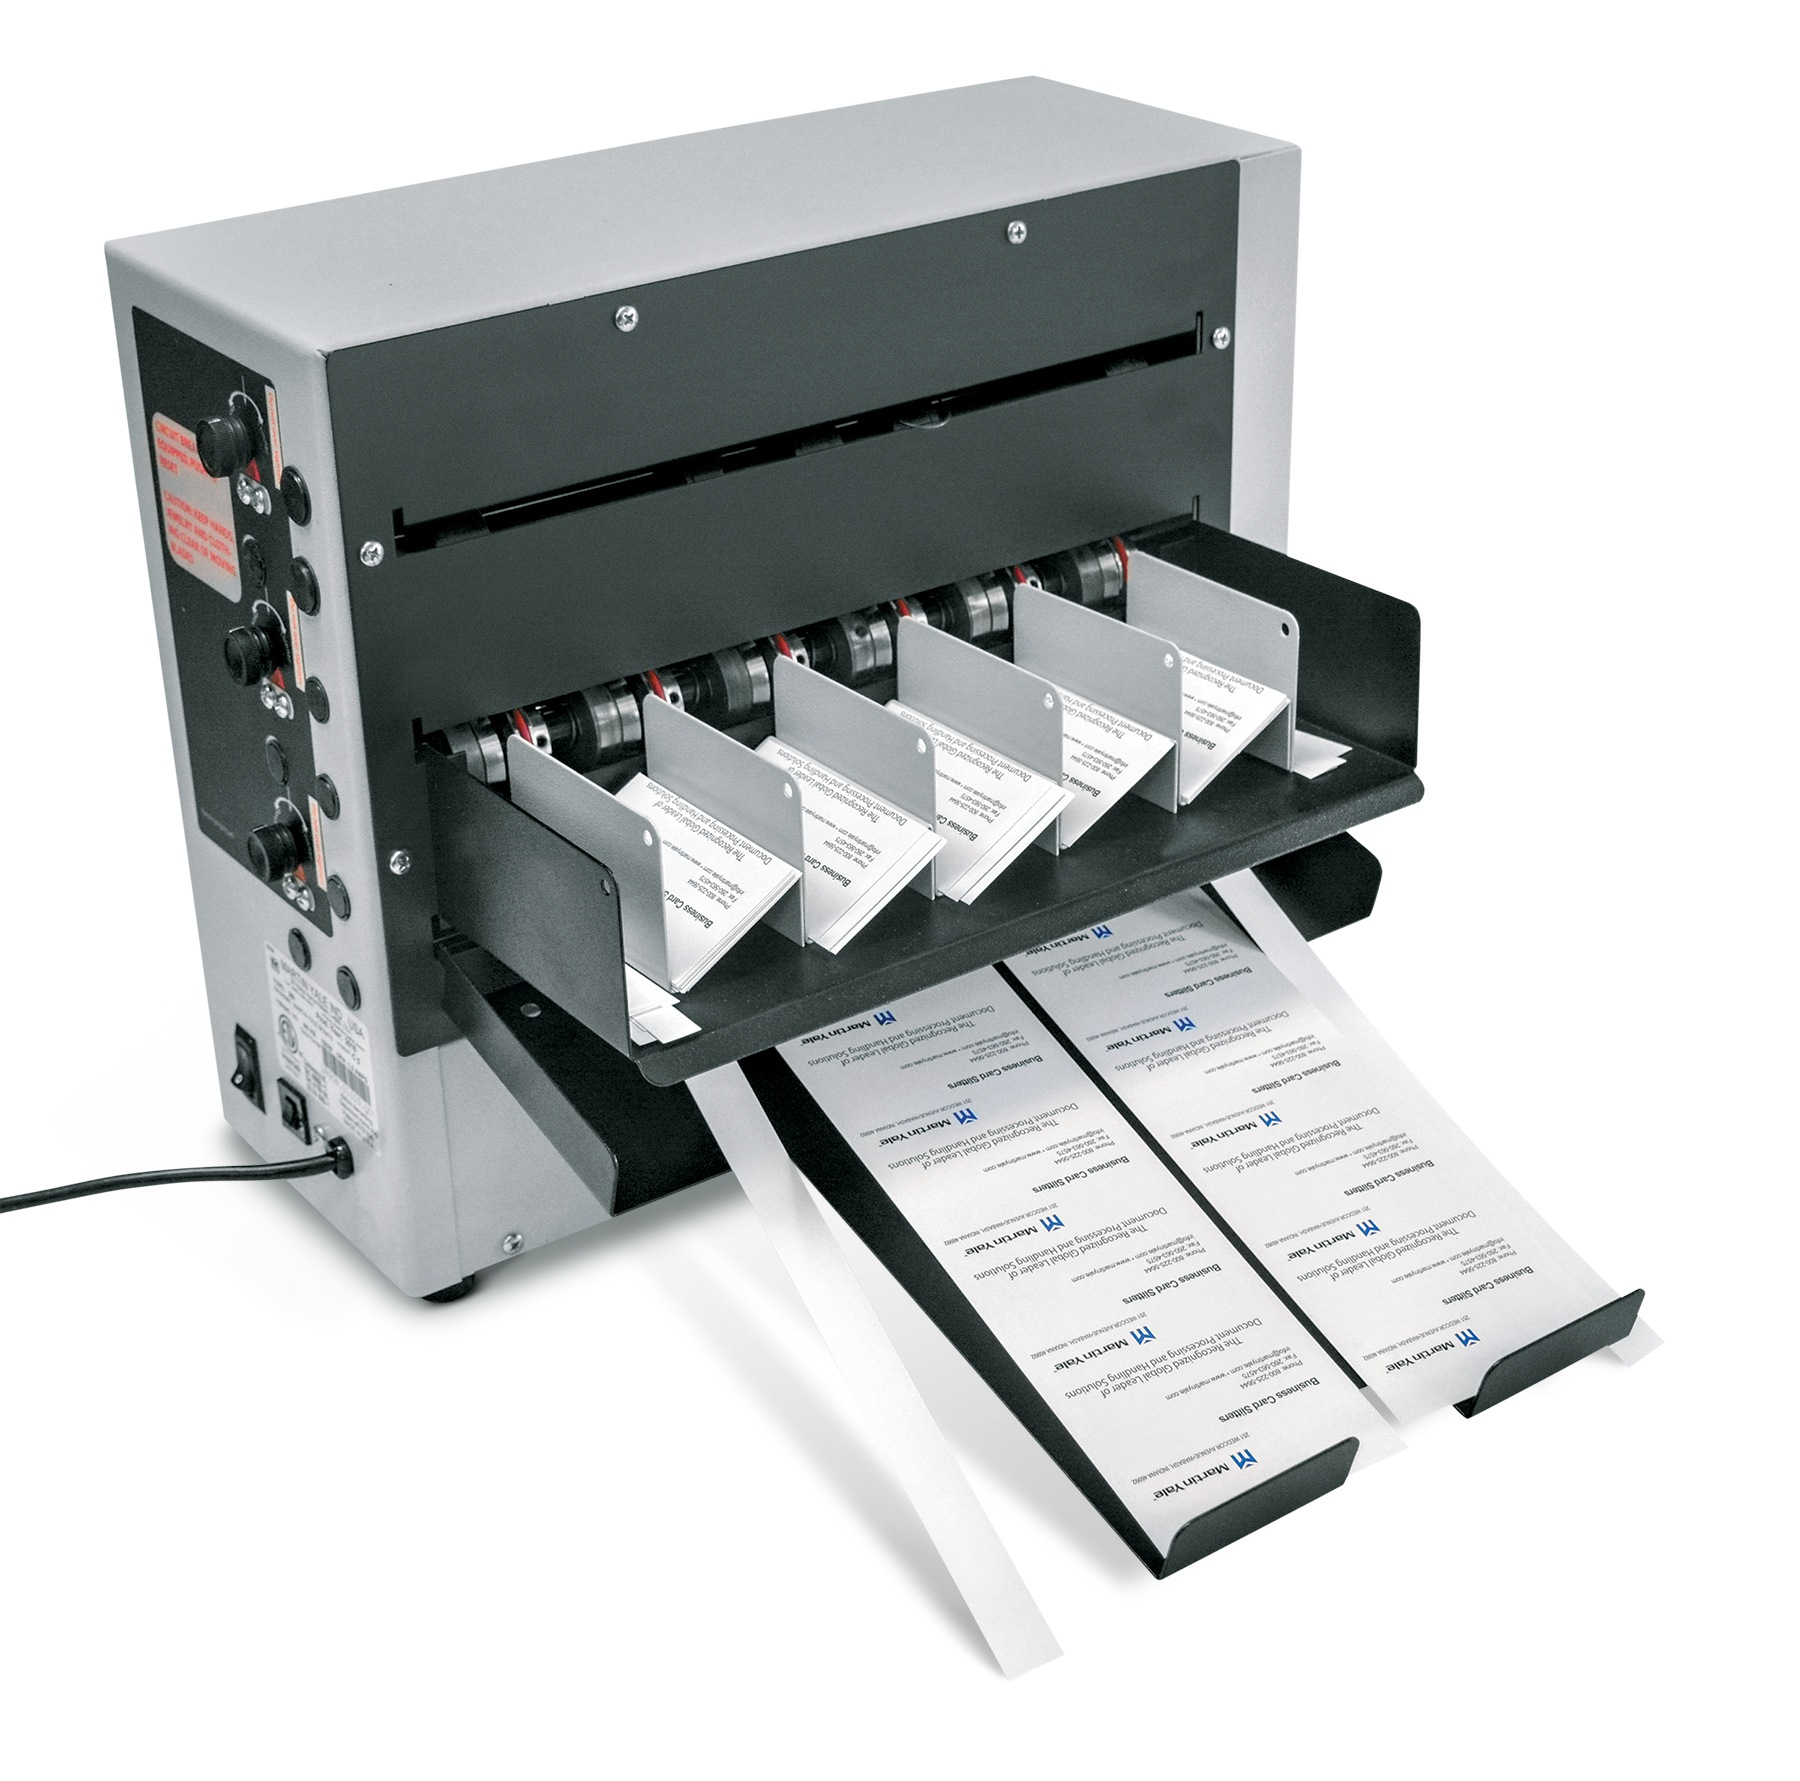 BCS410 Desktop Business Card Slitter/Score/Perforate - Martin Yale